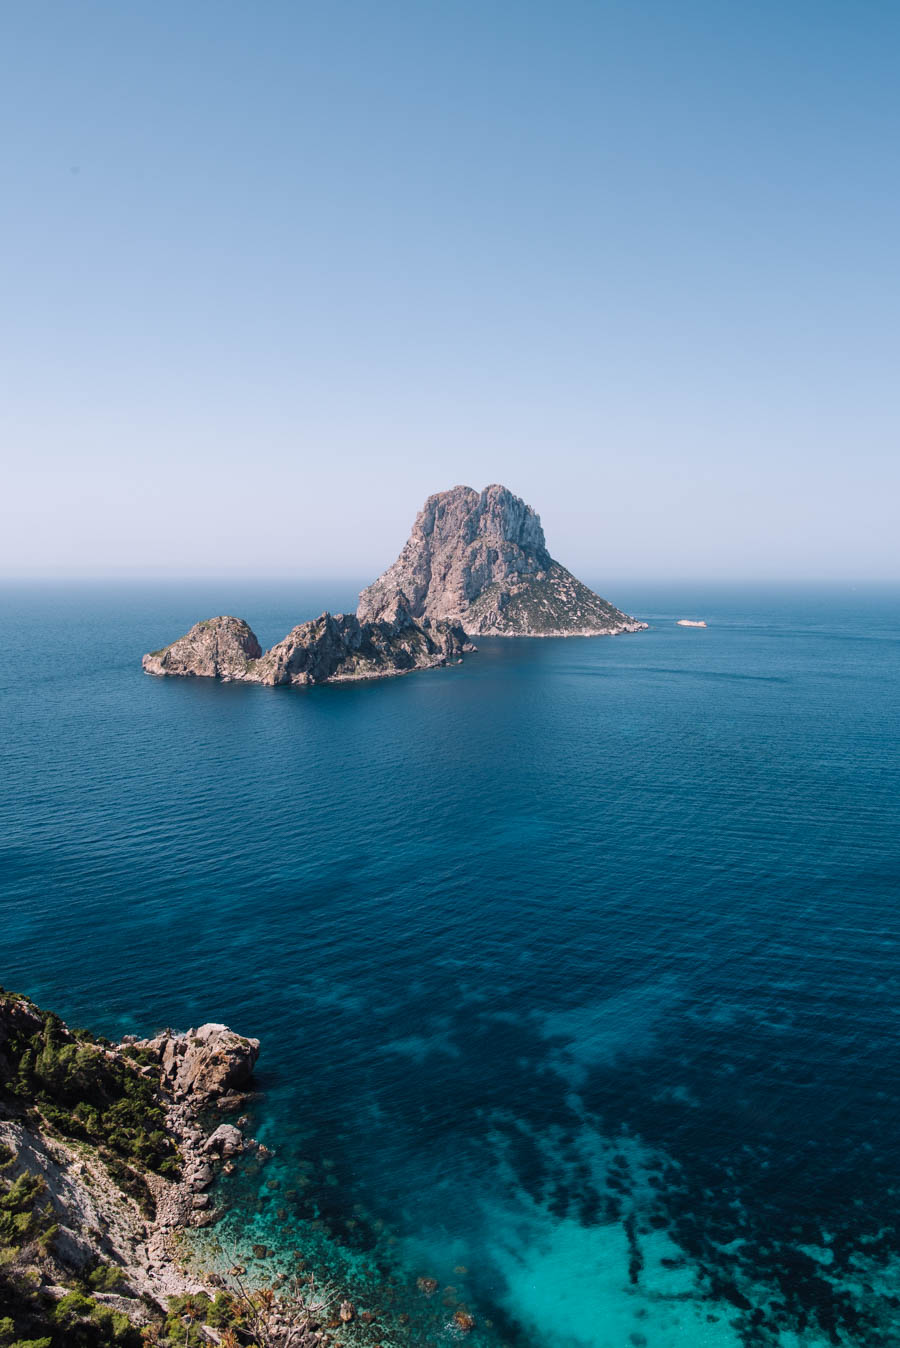 Discover what to do in Ibiza that isn't a party. Ibiza is much more than just super clubs. Discover the best beaches in Ibiza and the best things to do on the Island.